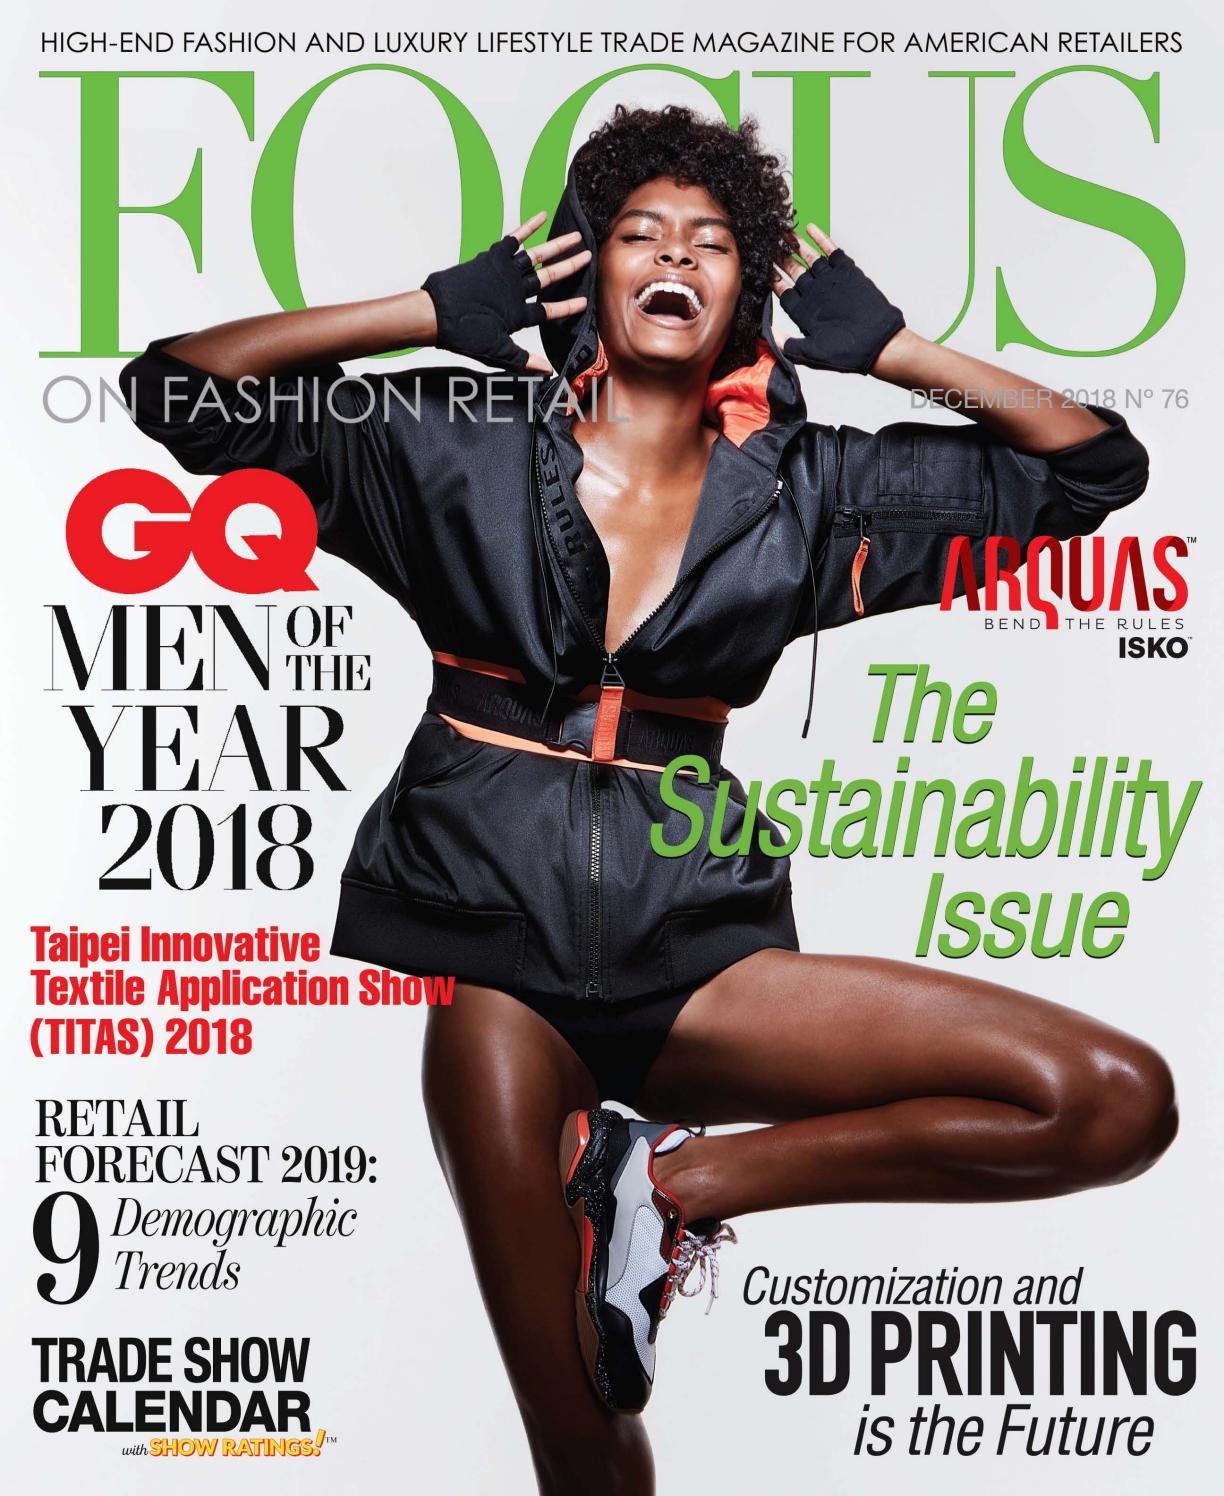 Focus On Fashion Retail- December 2018 ...